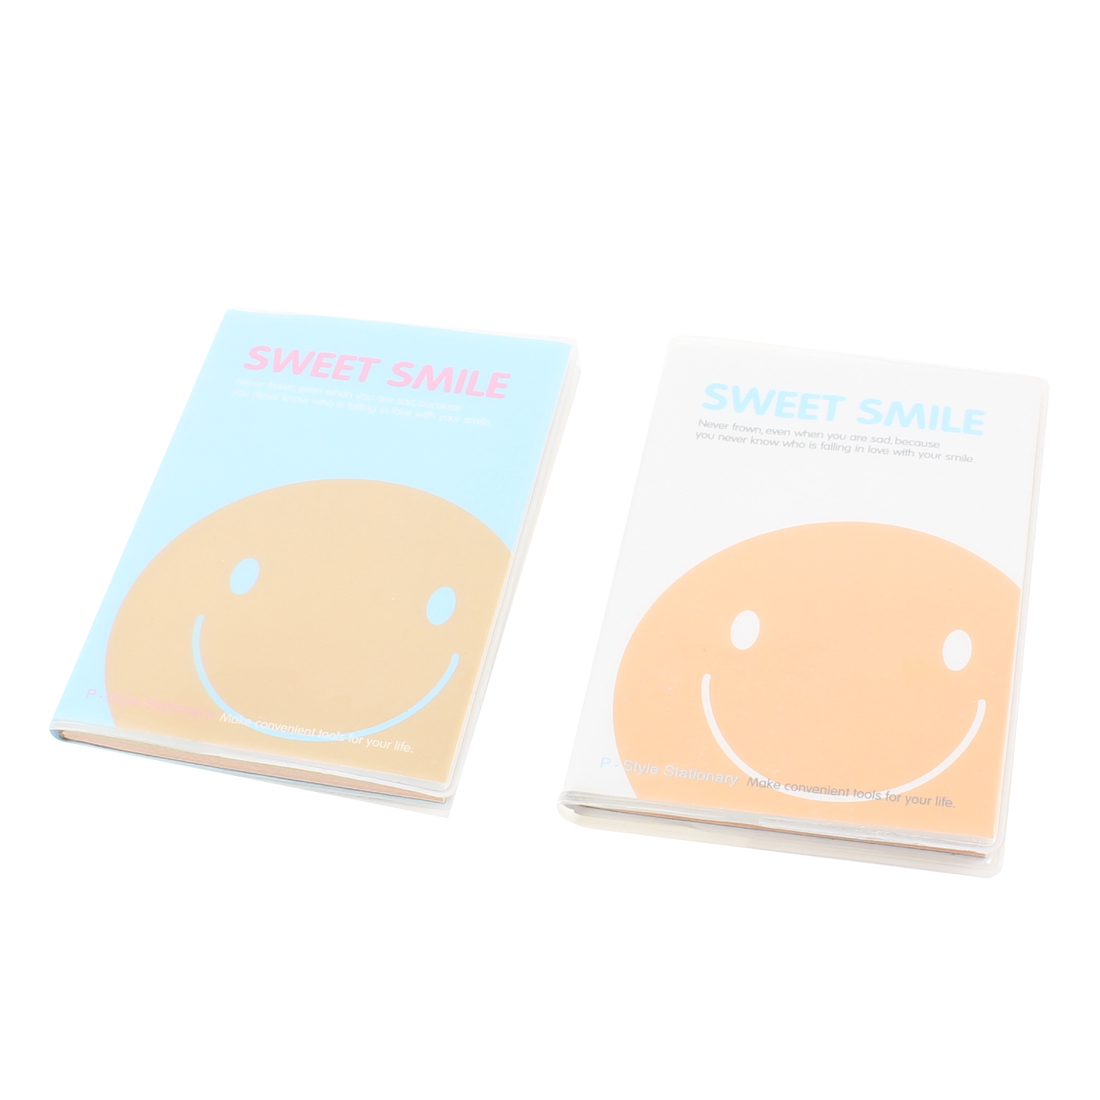 2 Pcs Smile Face Pattern Waterproof Plastic Cover Assorted Color Paper Notebook